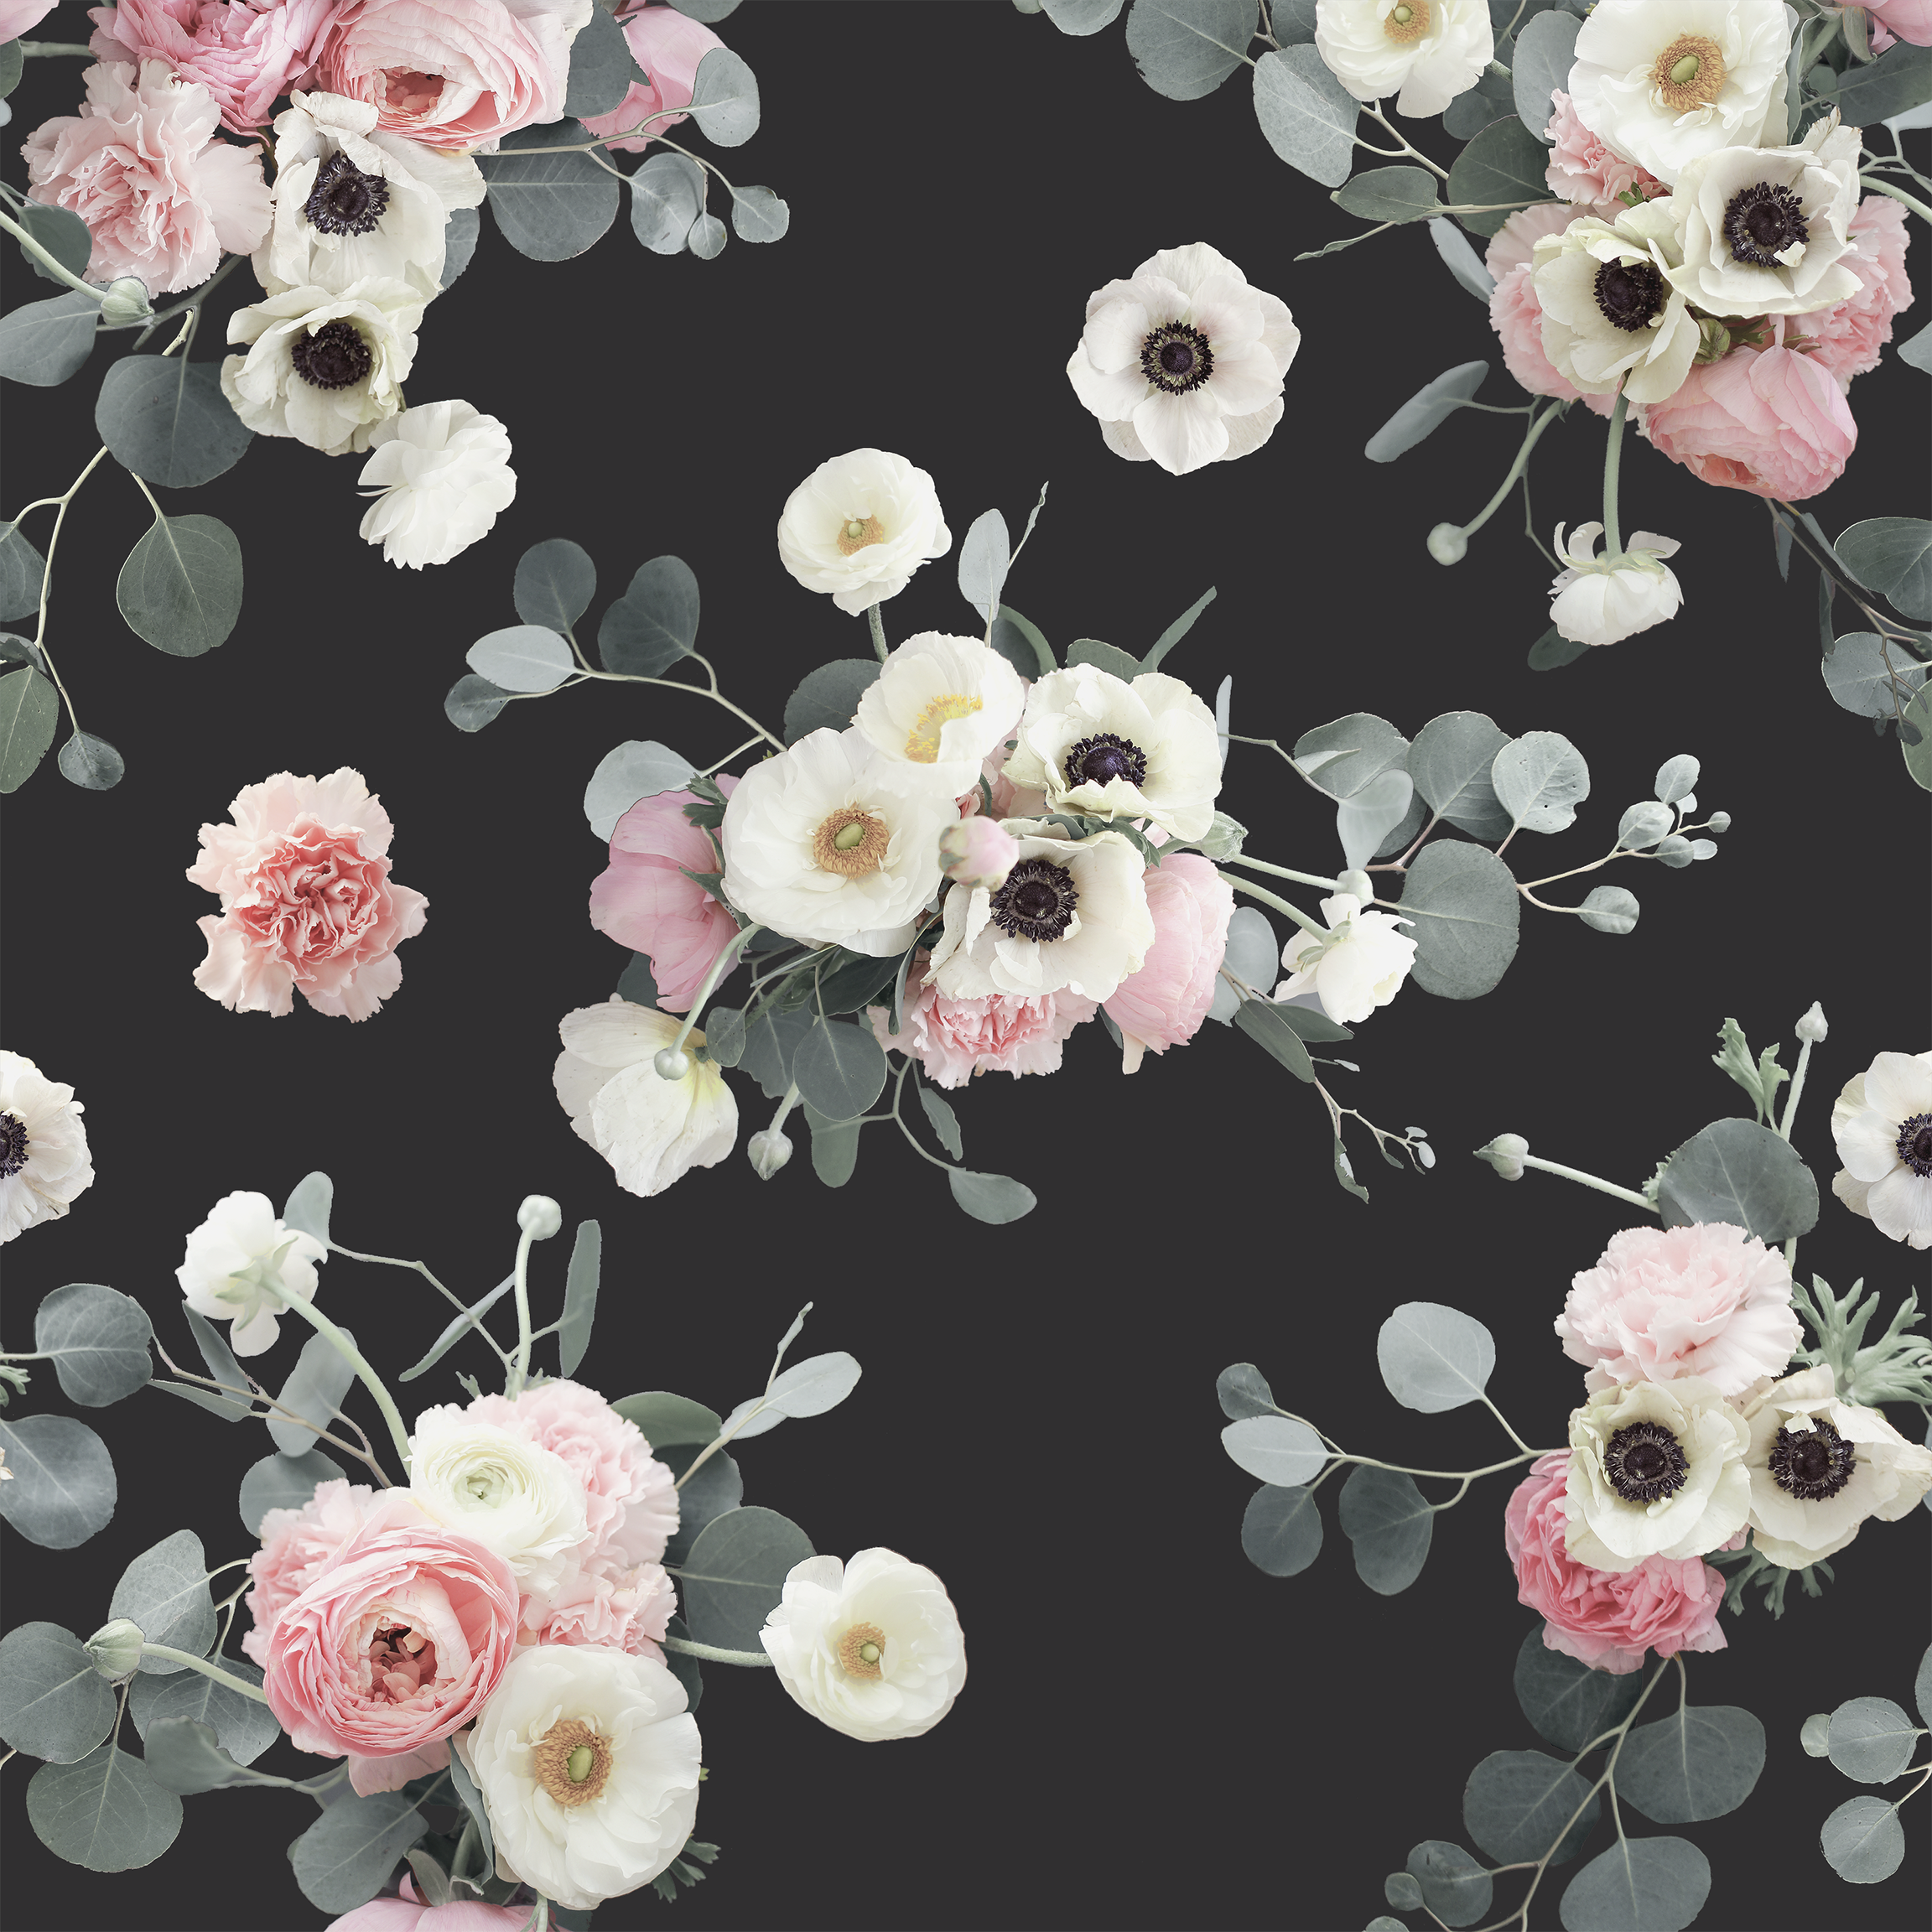 Midnight Floral Removable Fabric Wallpaper Peel And Stick